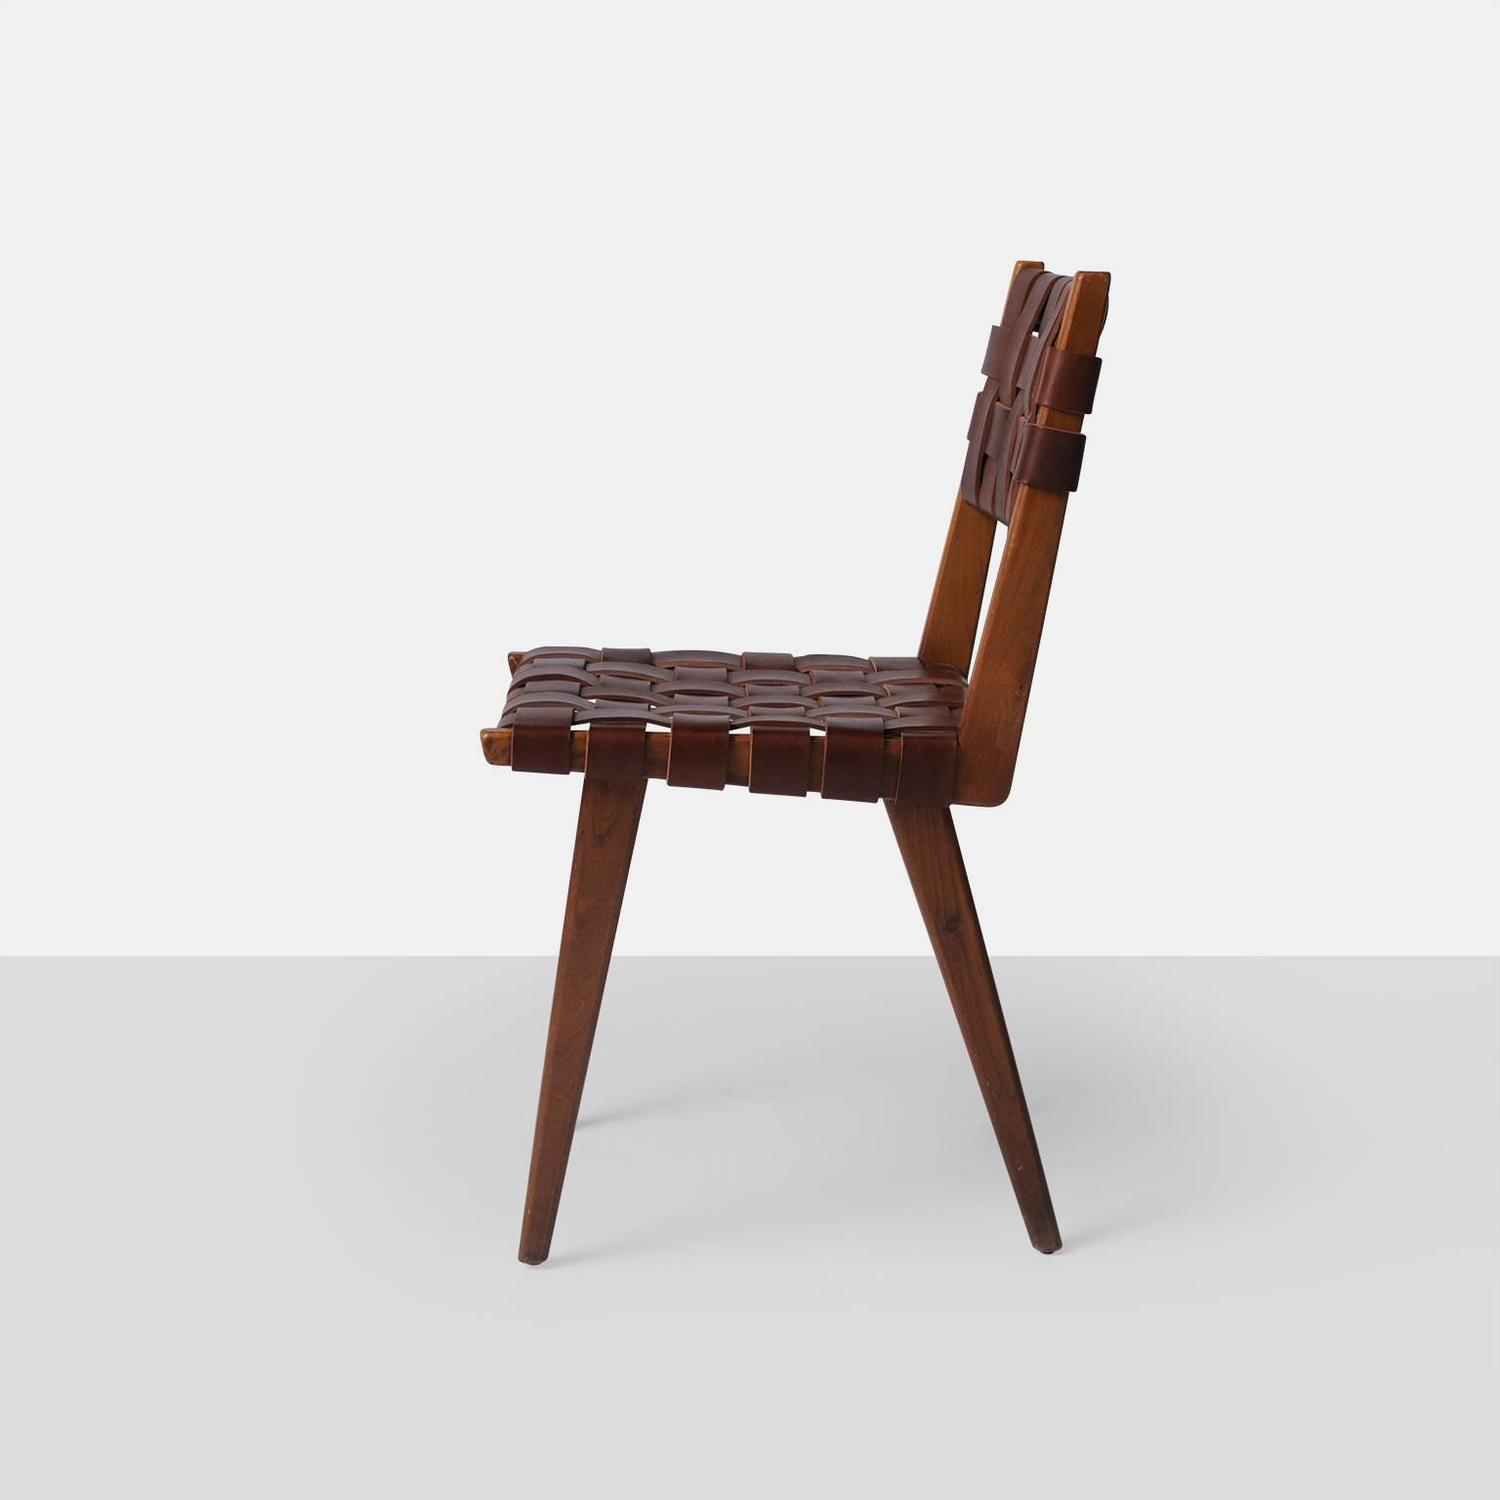 Jens risom side chairs at 1stdibs - Jens risom side chair ...